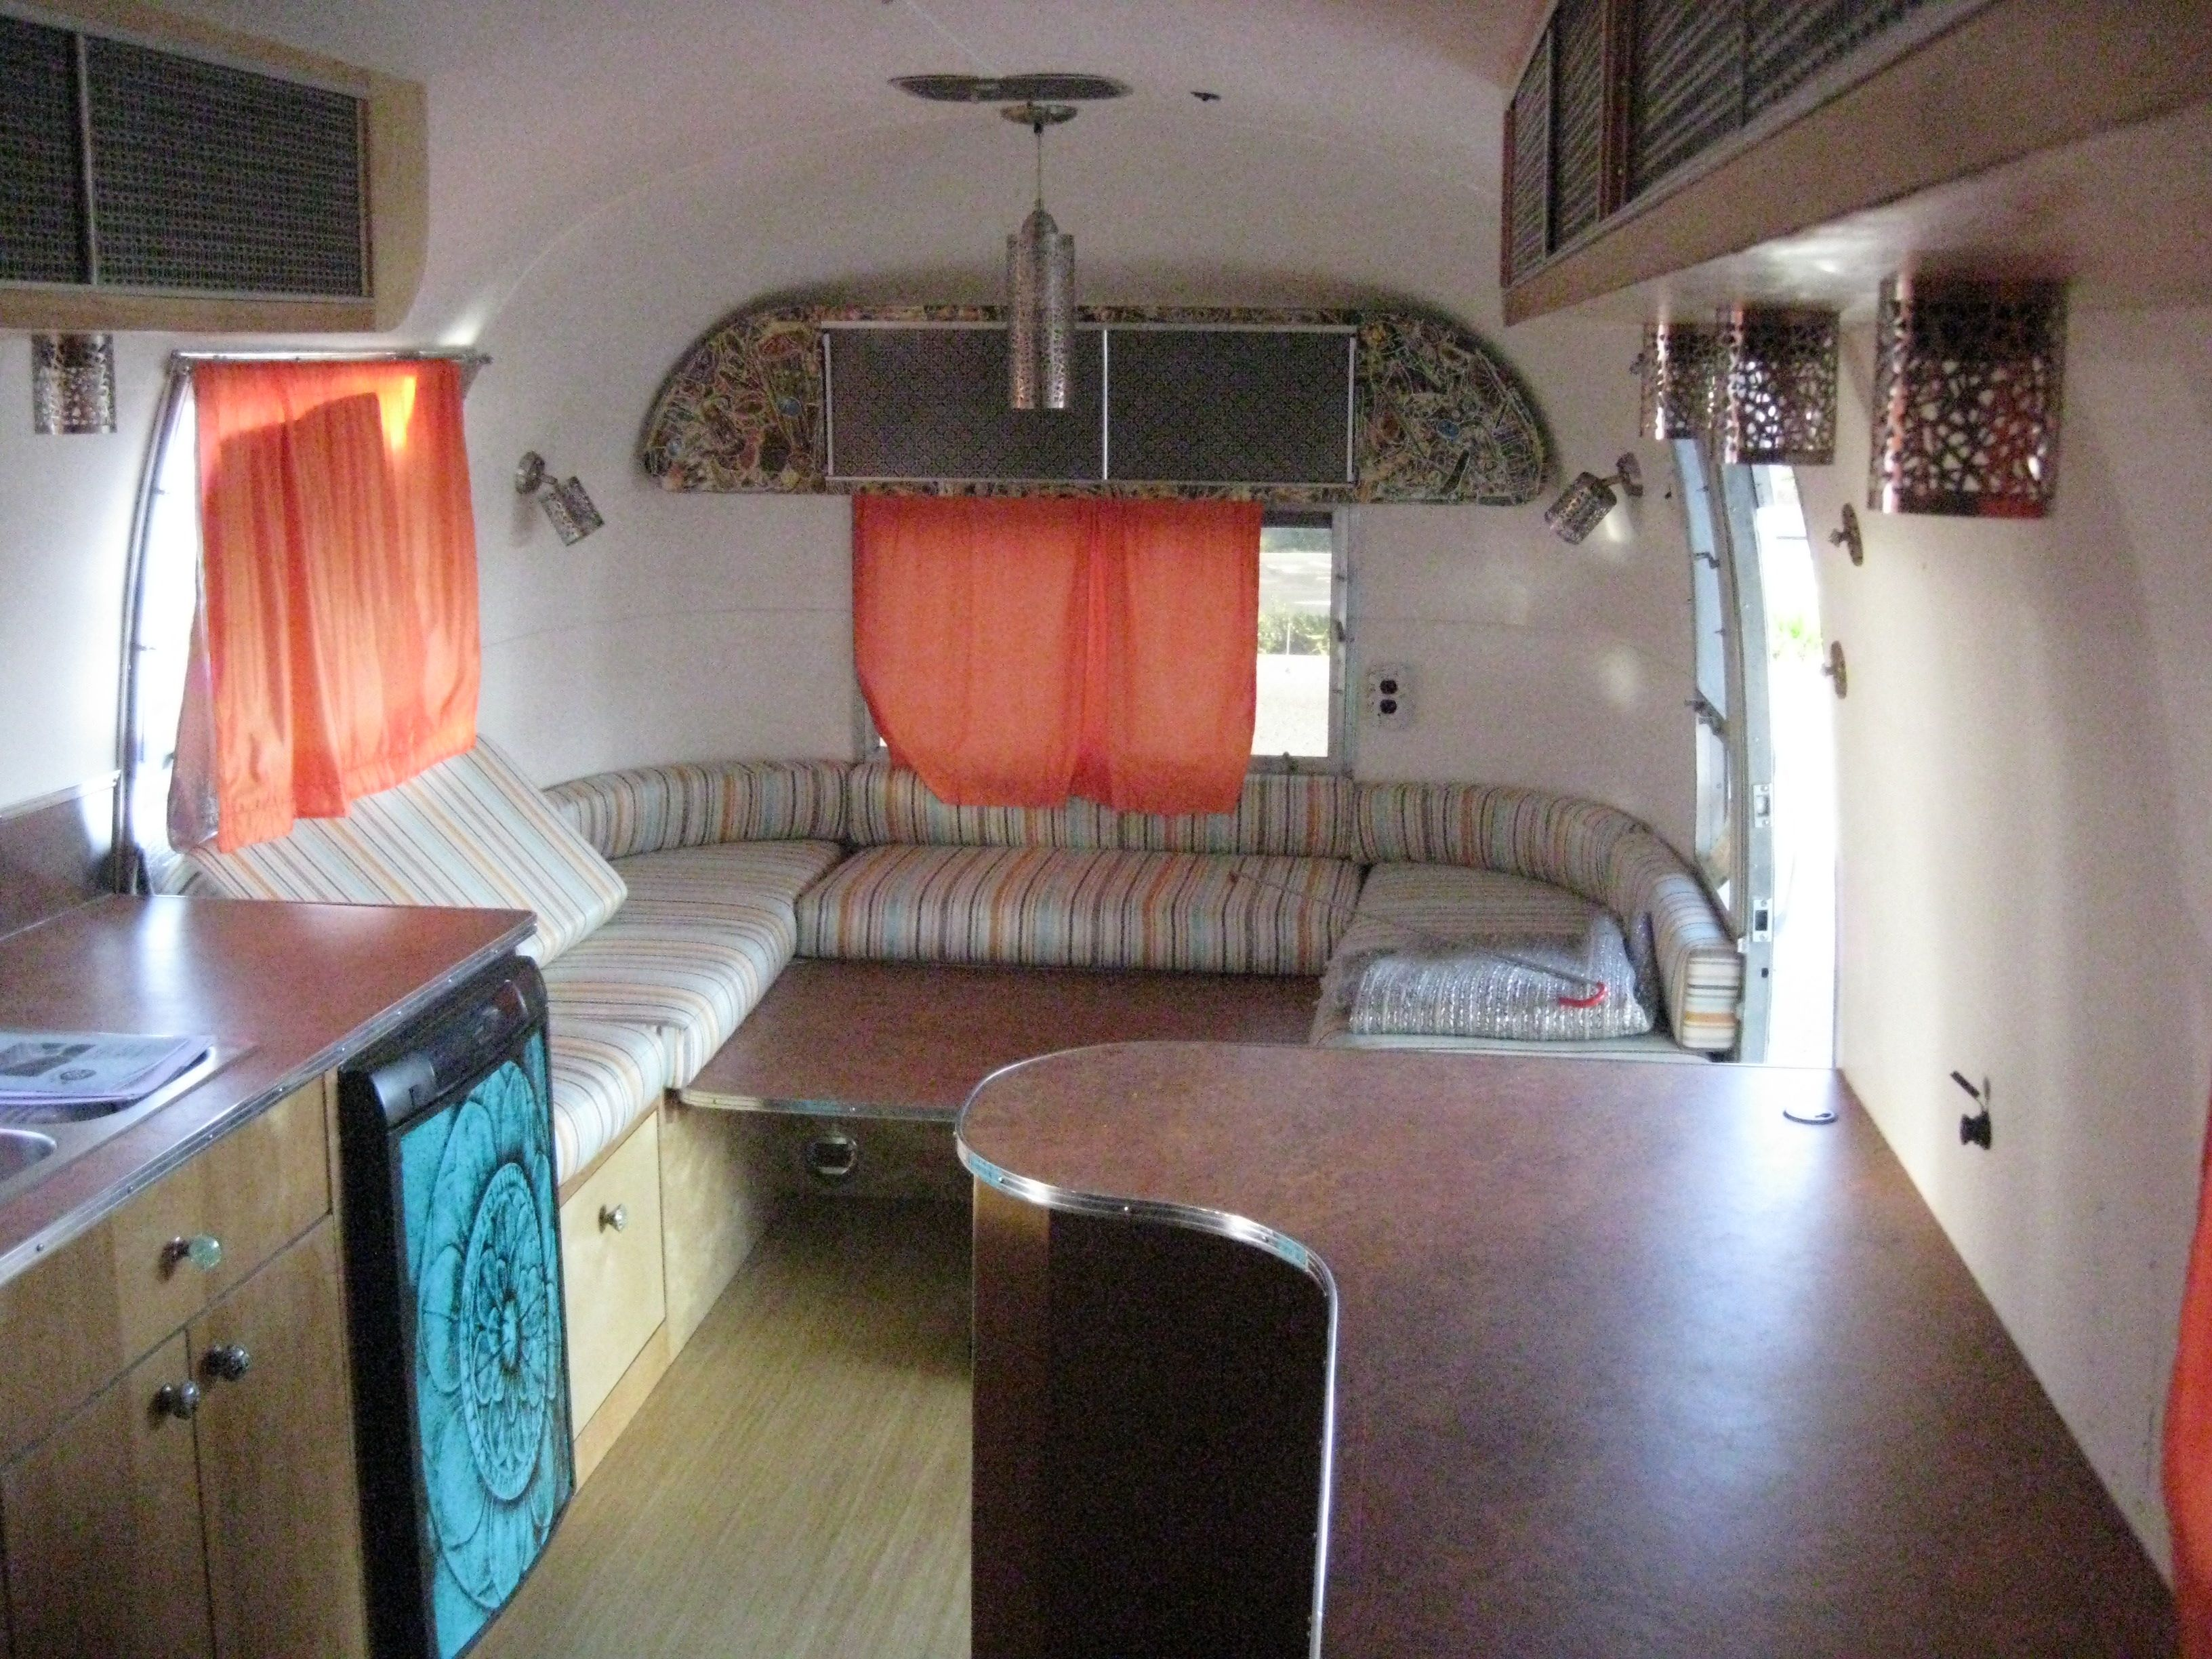 1968 Airstream Overlander we just installed a new AC unit